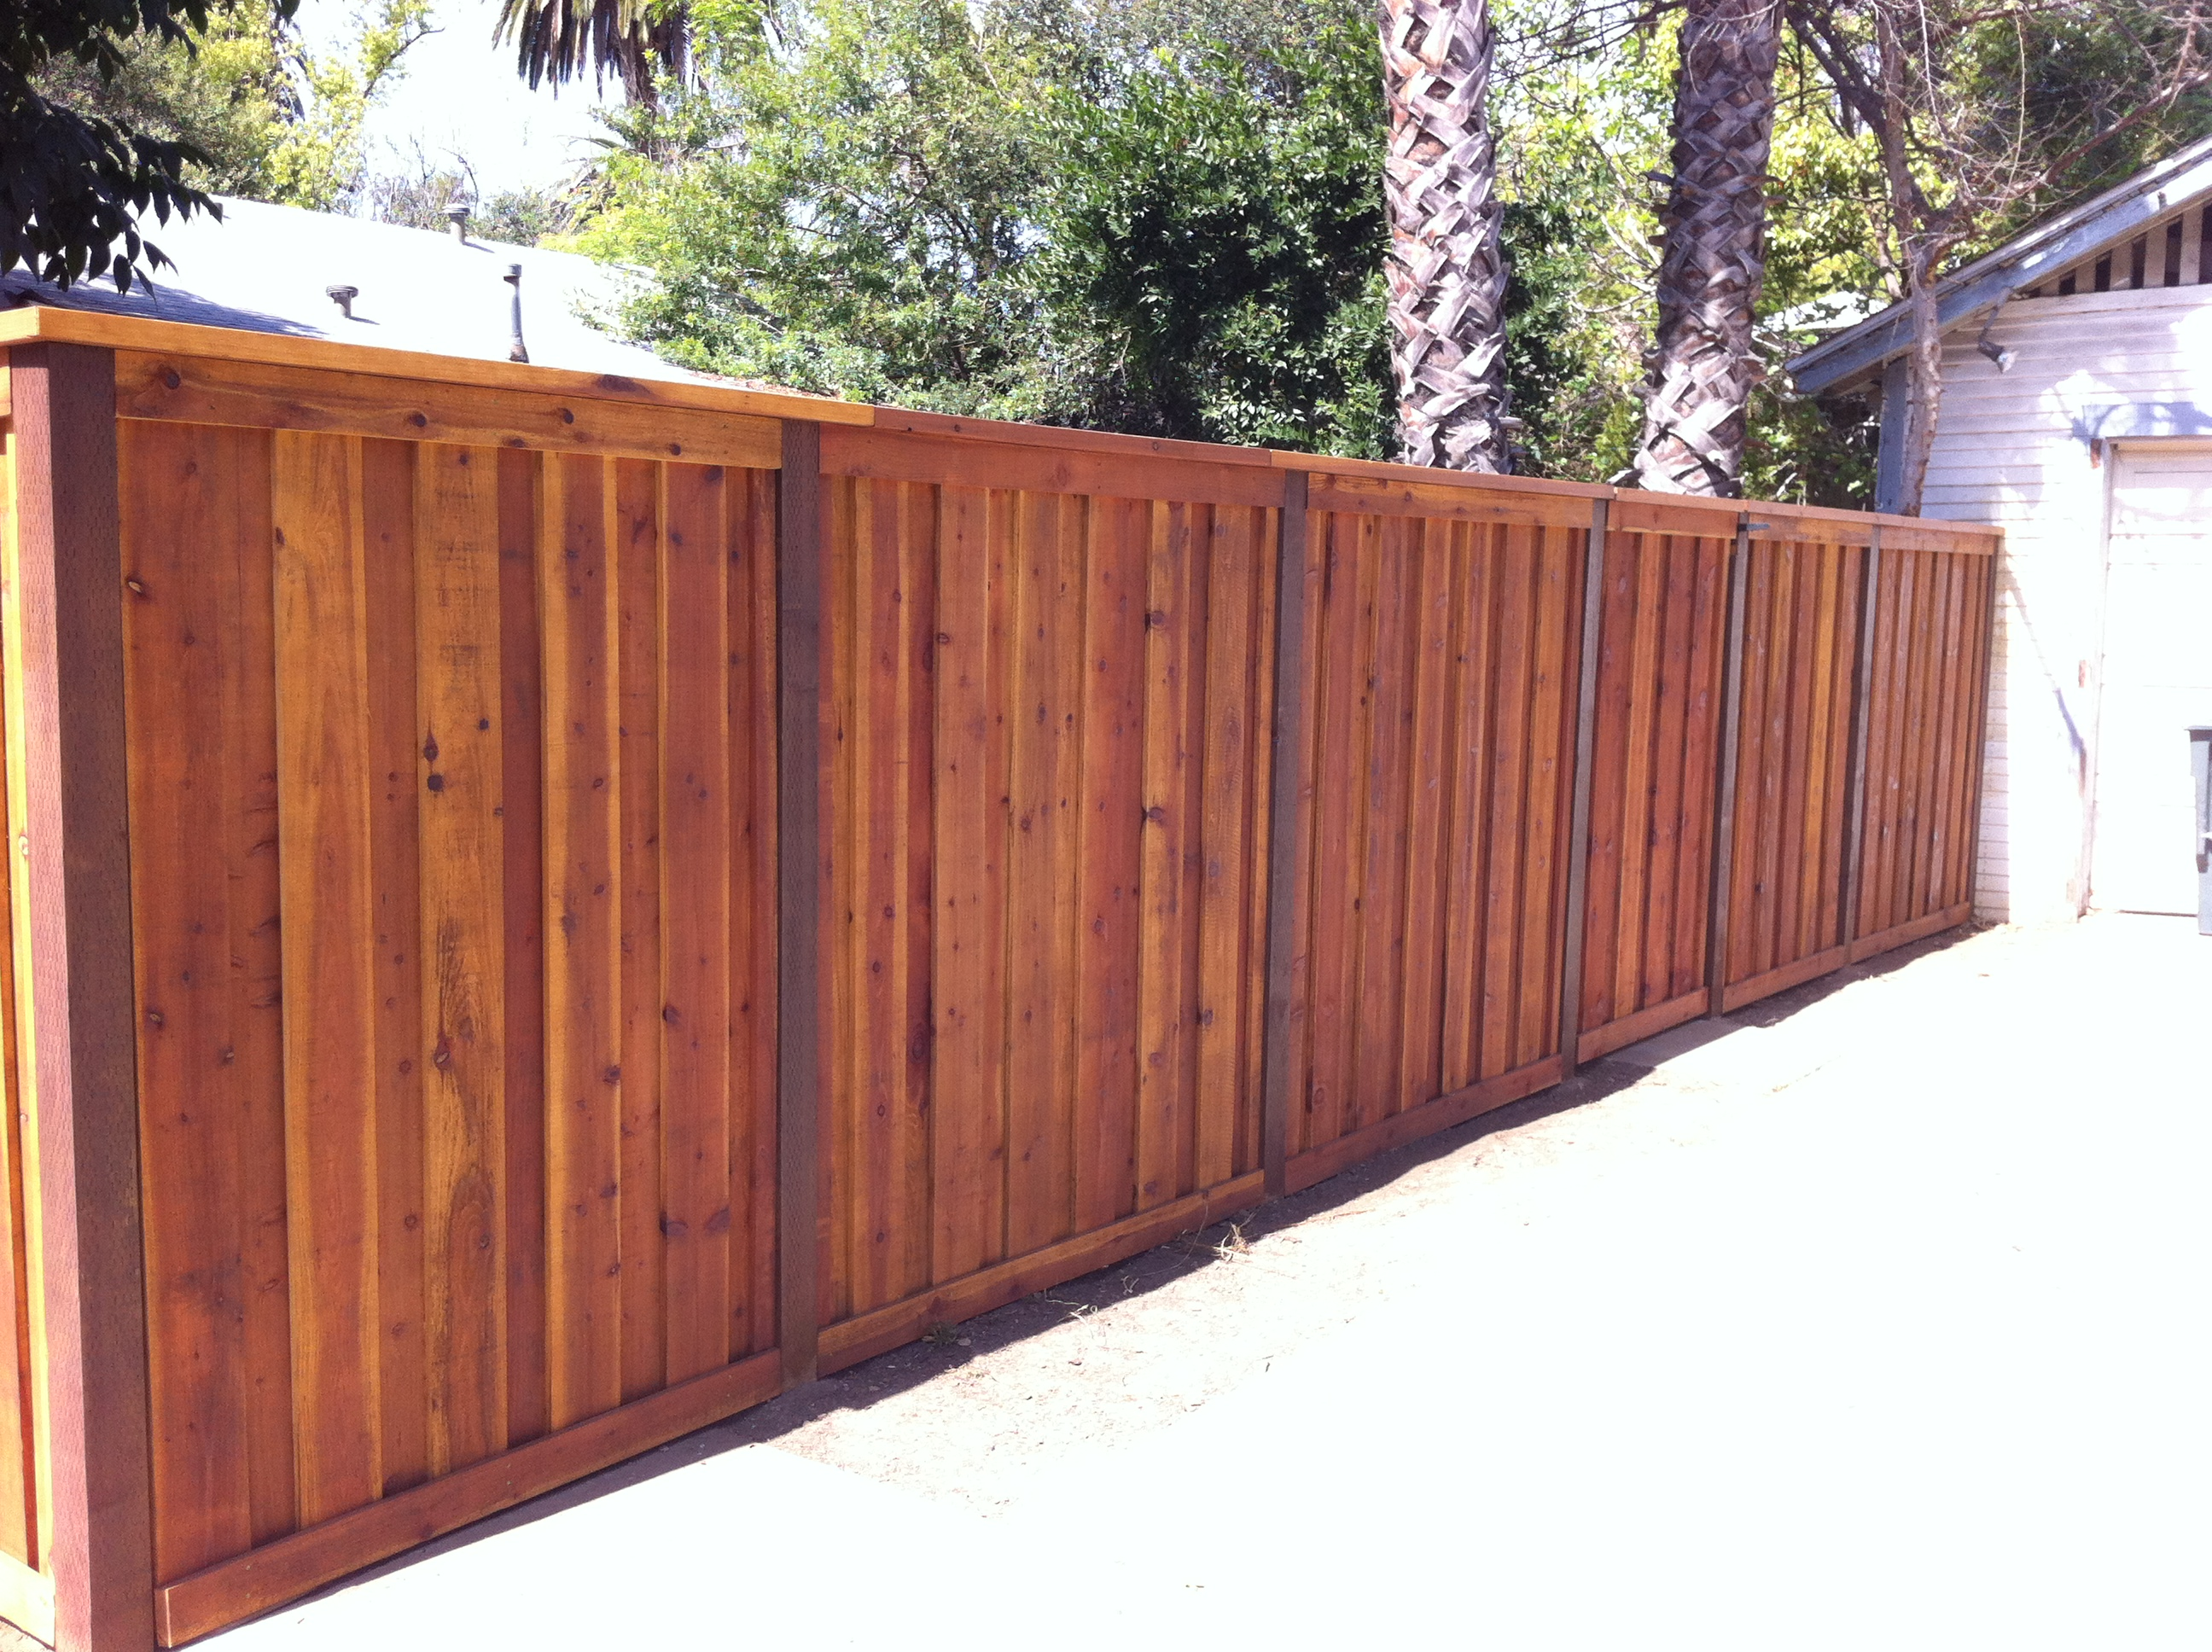 Redwood board on board style fence